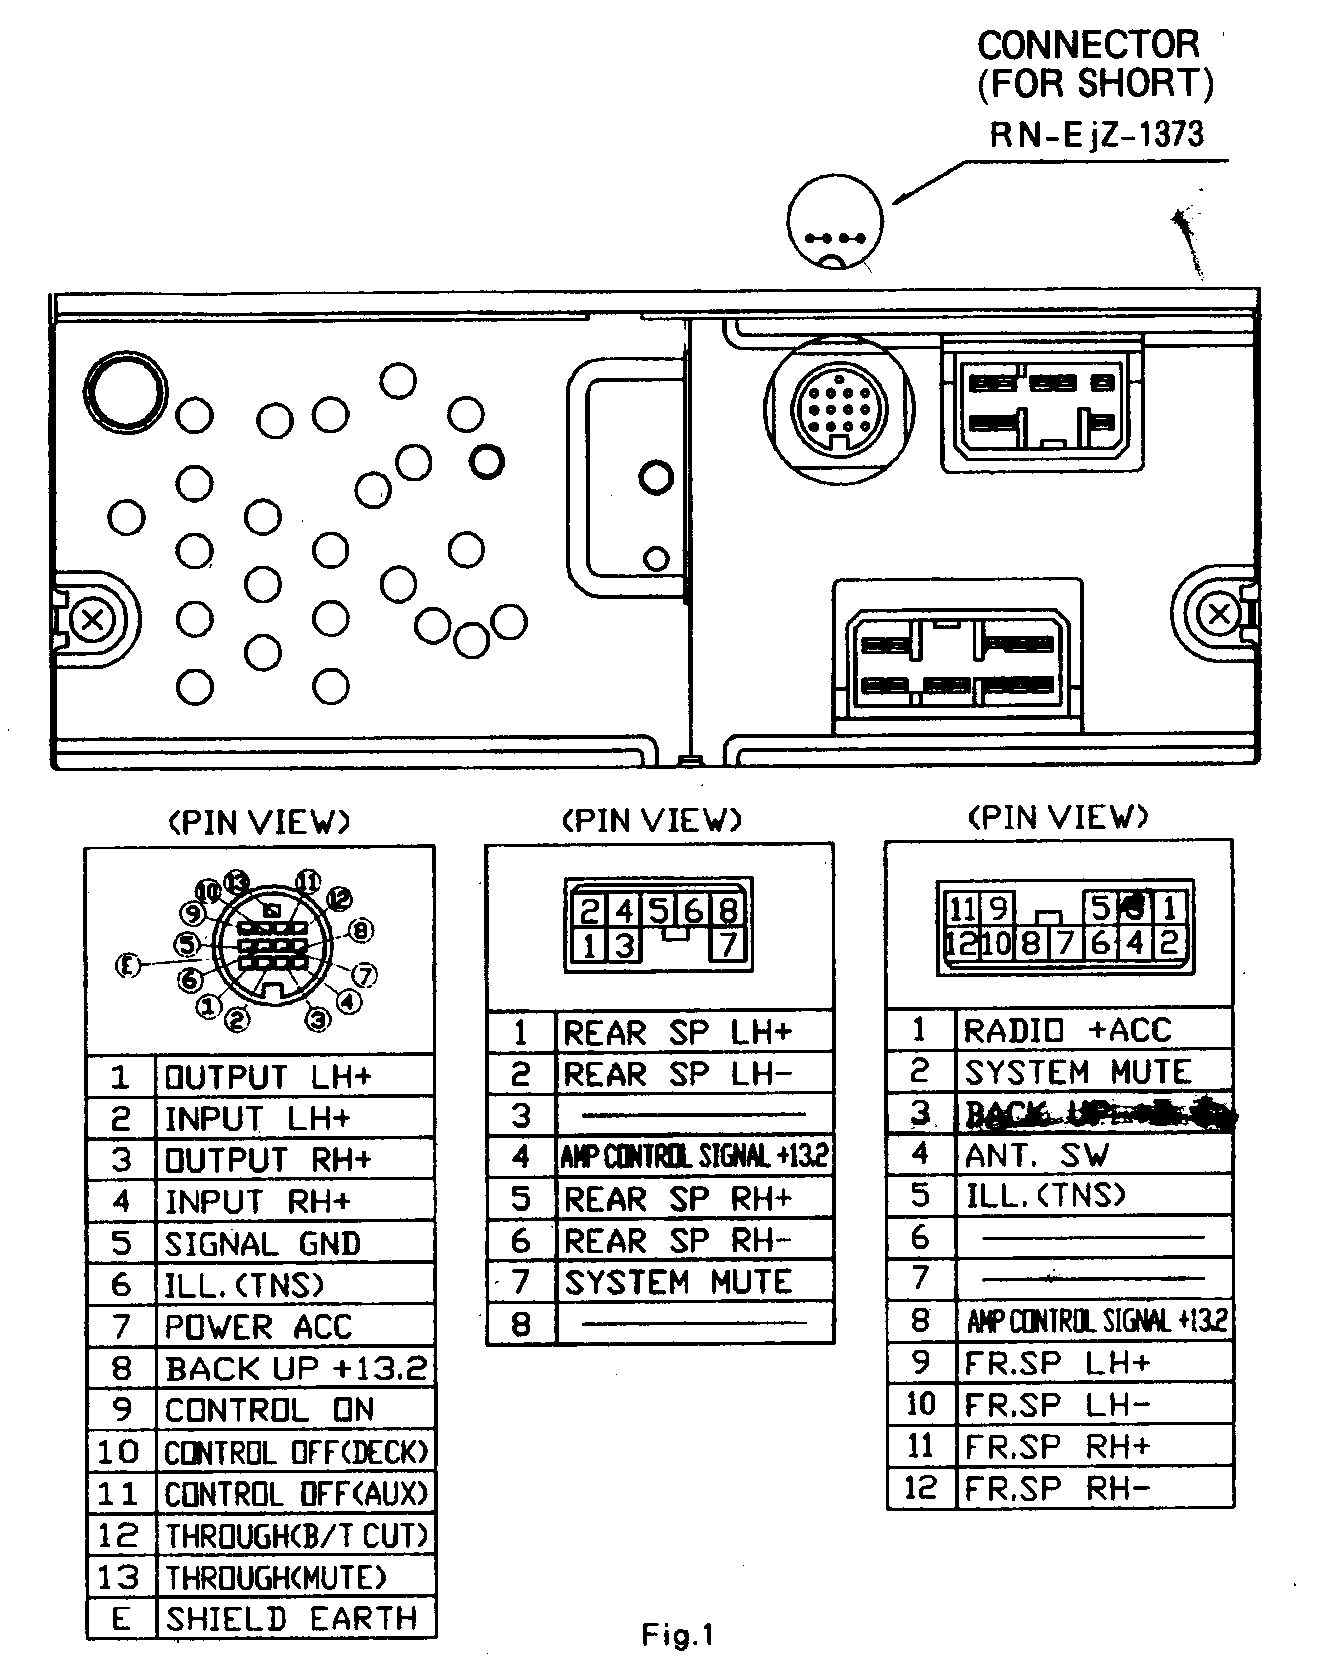 MAZDA Car Radio Wiring Connector on 1995 mazda 626 wiring diagram